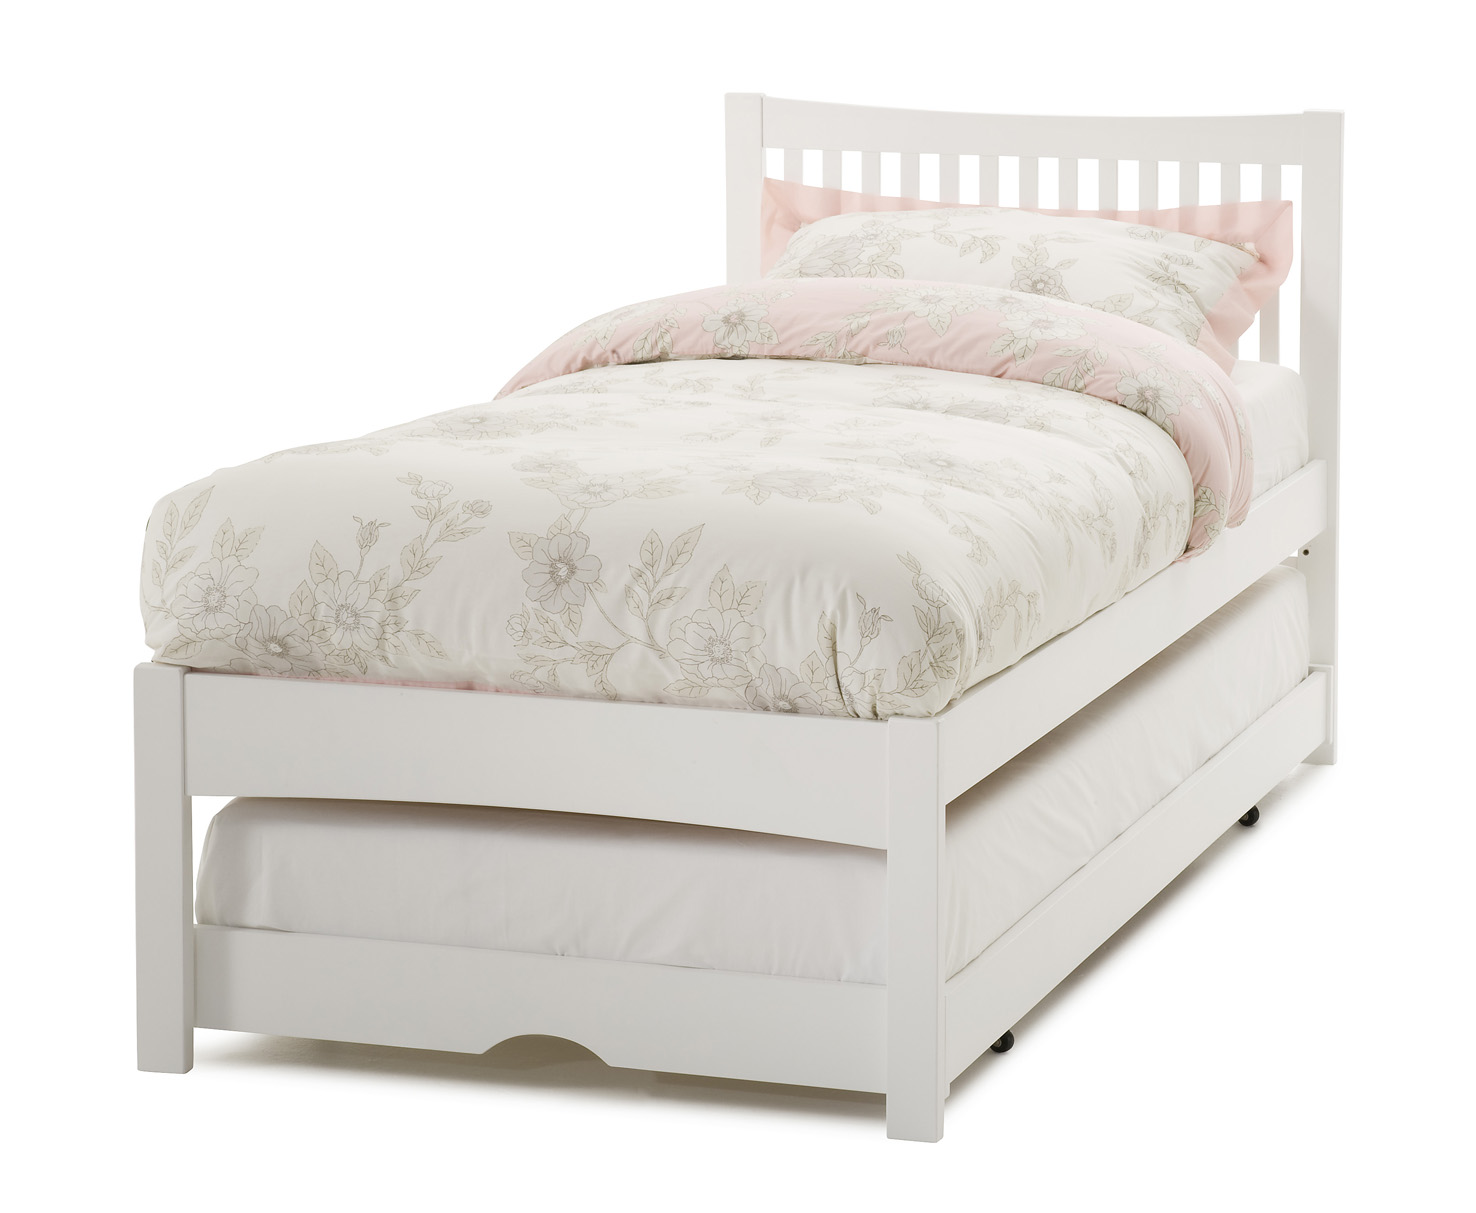 Guest bed solutions homesfeed for Bed with mattress